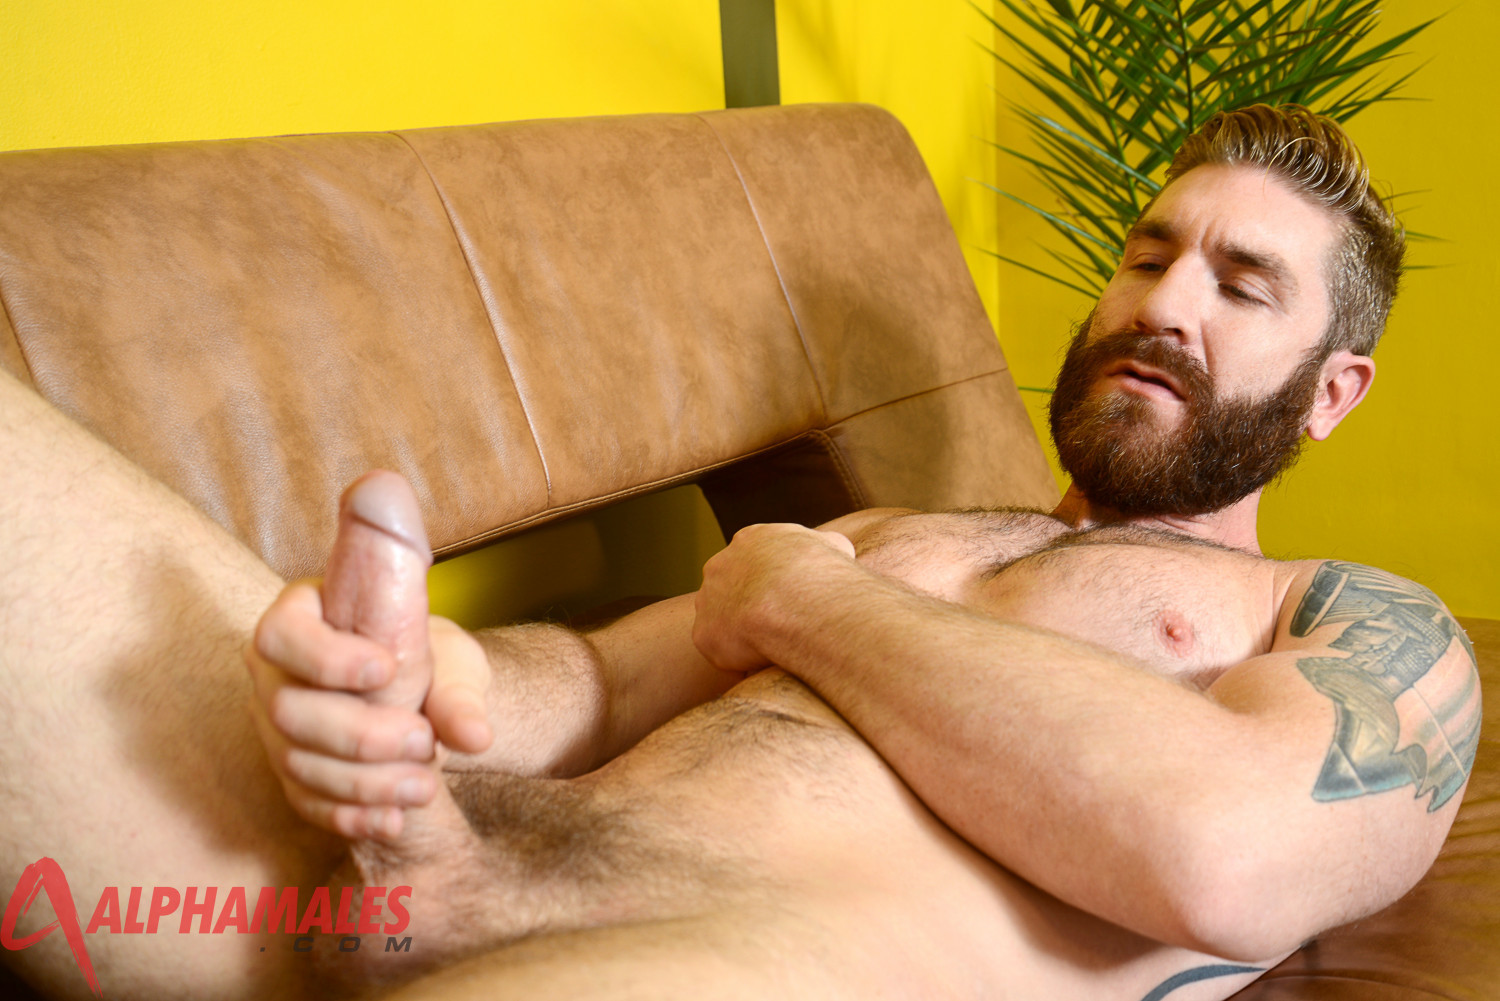 AlphaMales-Geoffrey-Paine-Big-Cock-Fleshlight-Fleshjack-Amateur-Gay-Porn-04 Amateur Hairy Muscle Stud Geoffrey Paine With Big Cock and Fleshjack